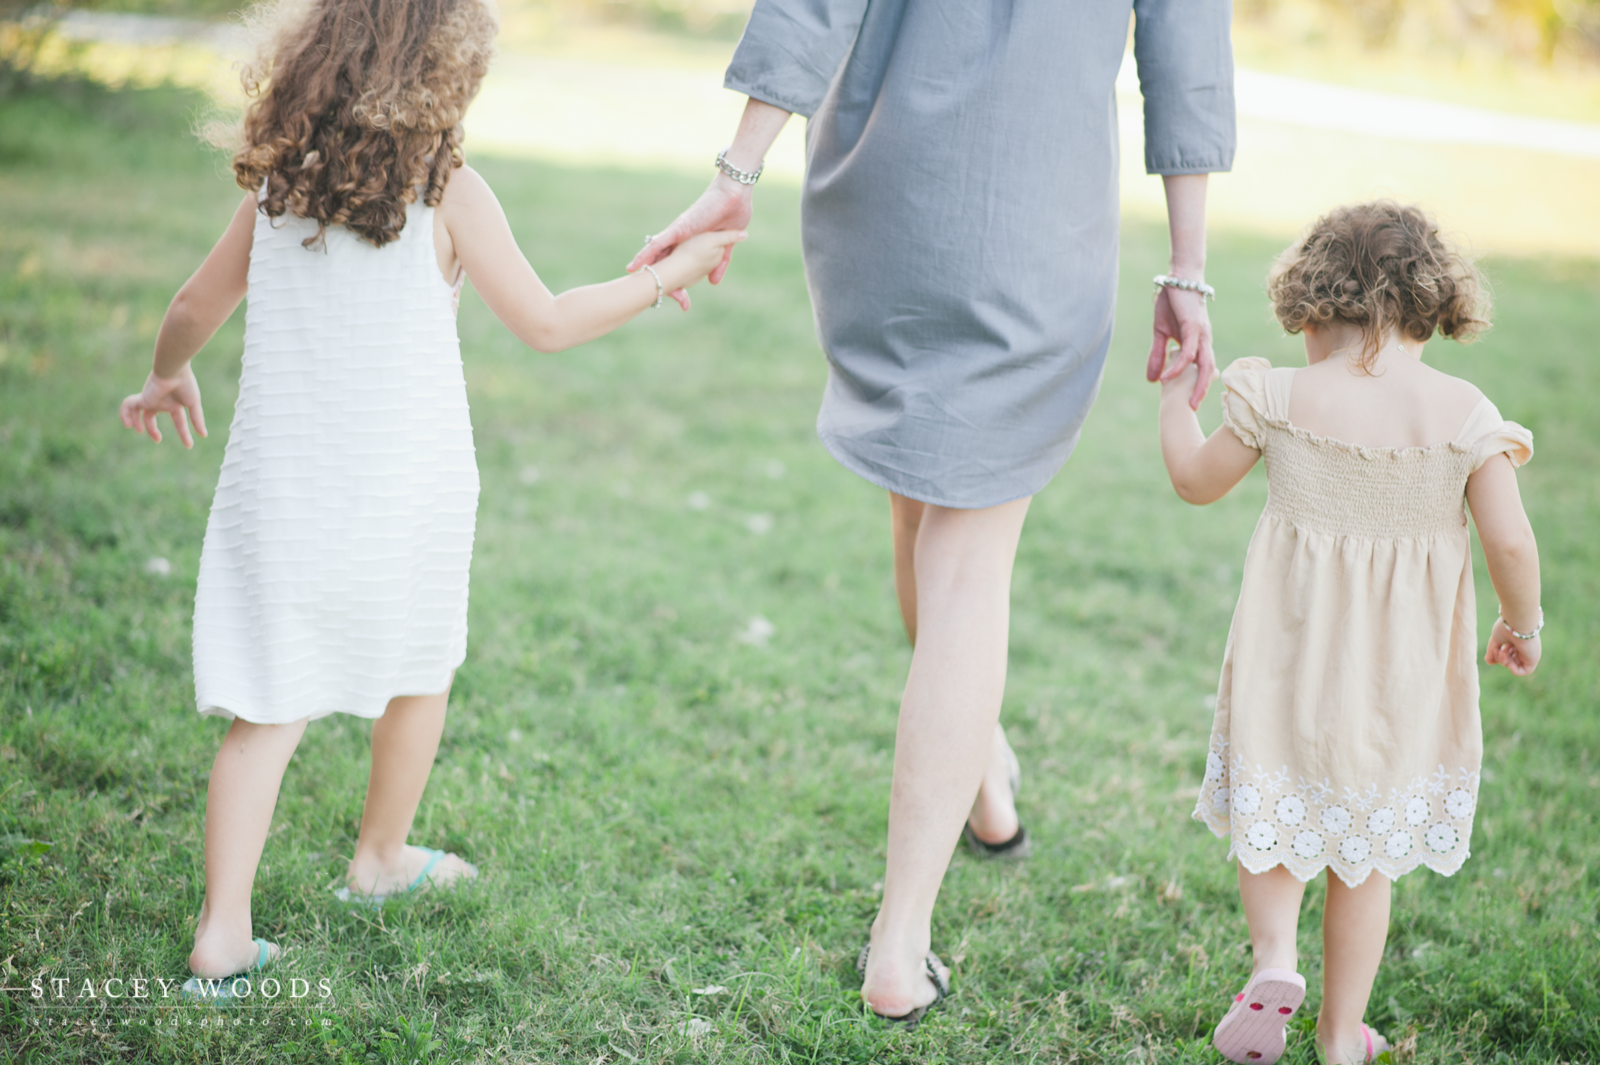 Florida Family Photographer Stacey Woods